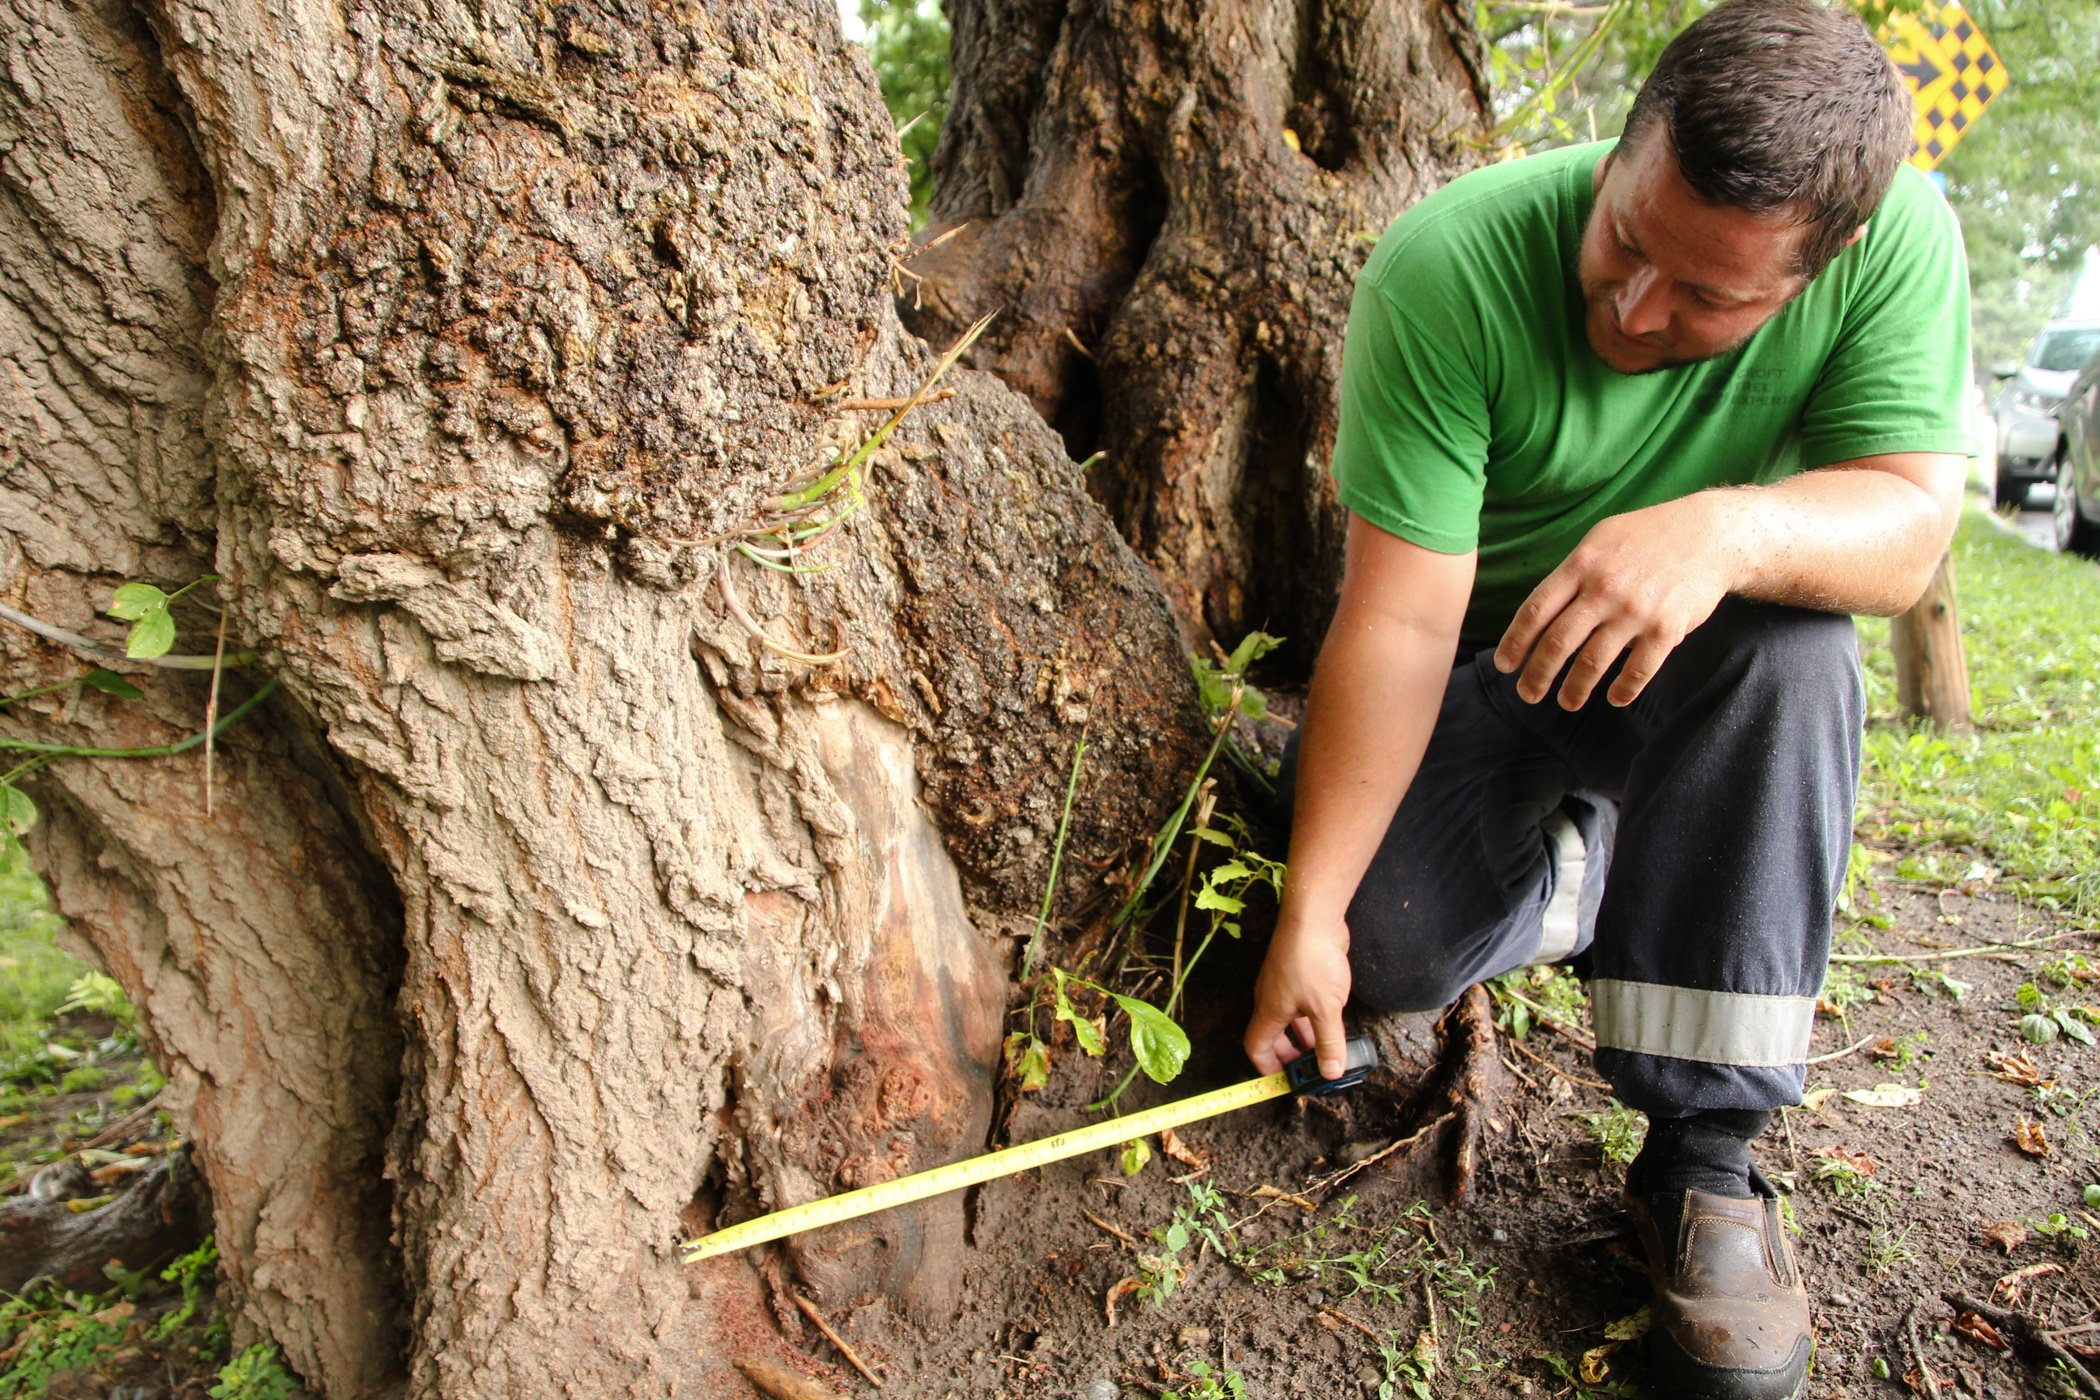 Tree Removal Professional Measuring Base Of Tree For Legal Relmoval